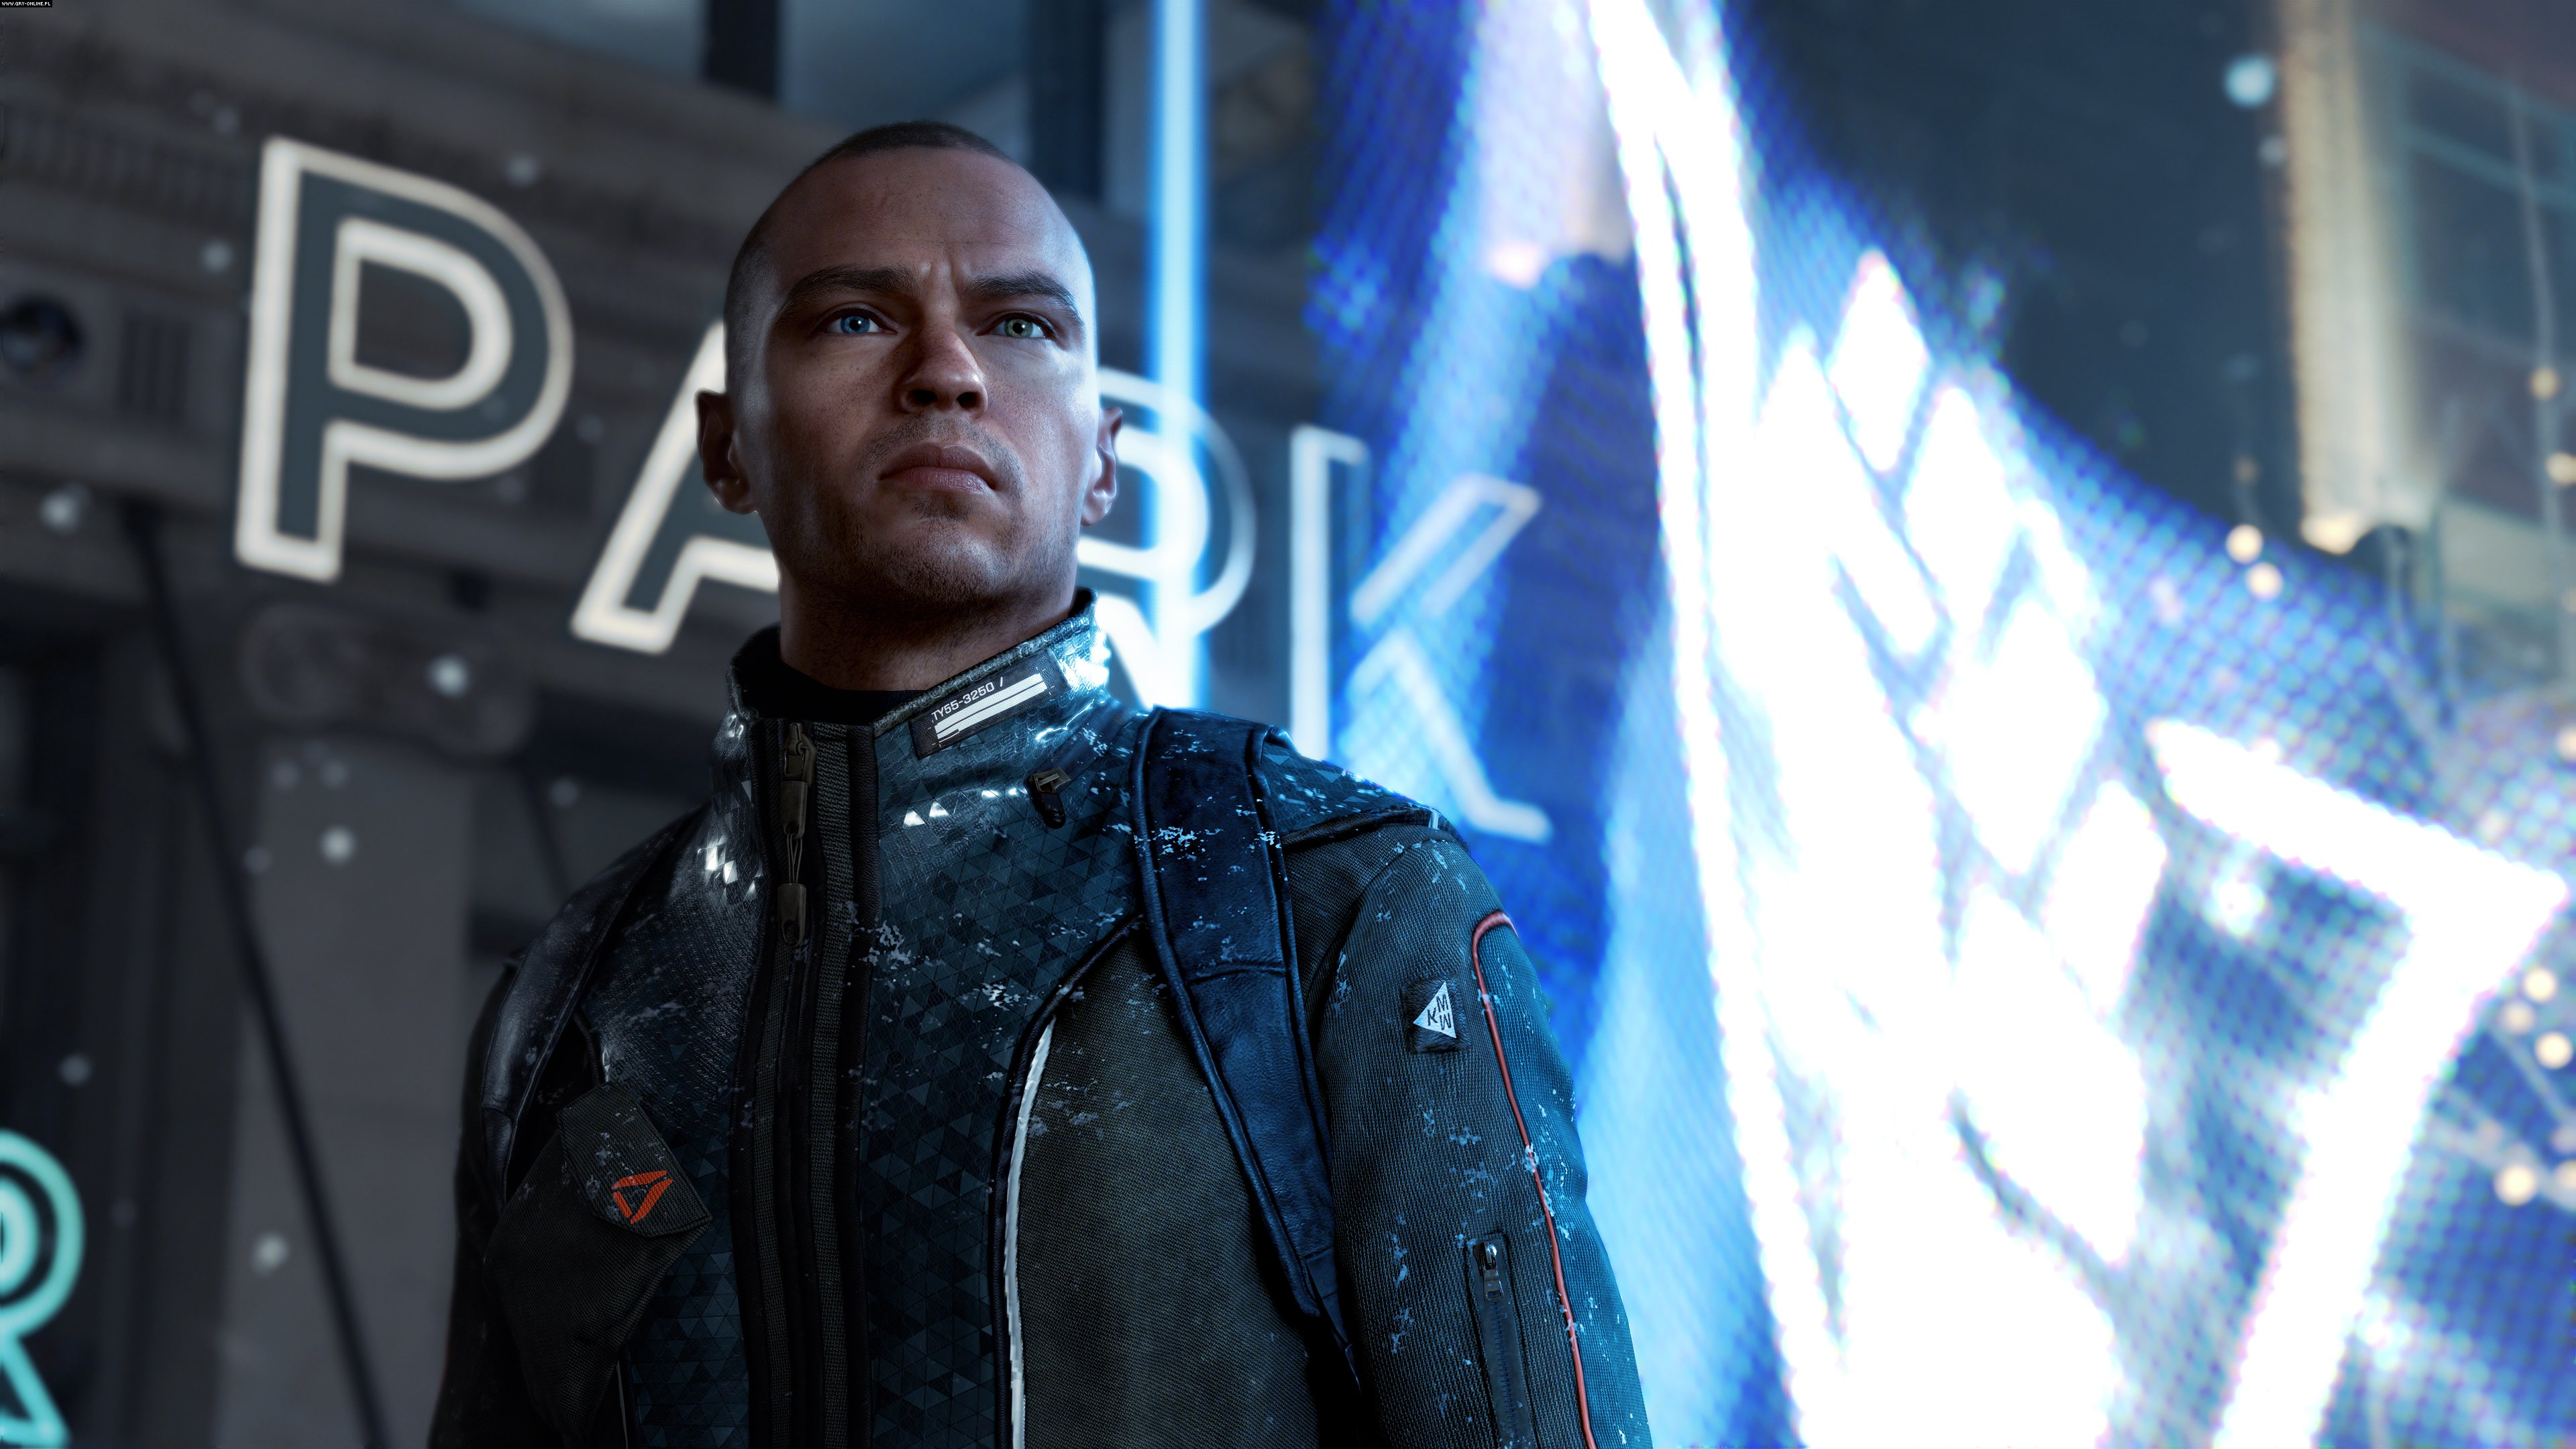 Detroit: Become Human PS4 Games Image 35/67, Quantic Dream, Sony Interactive Entertainment